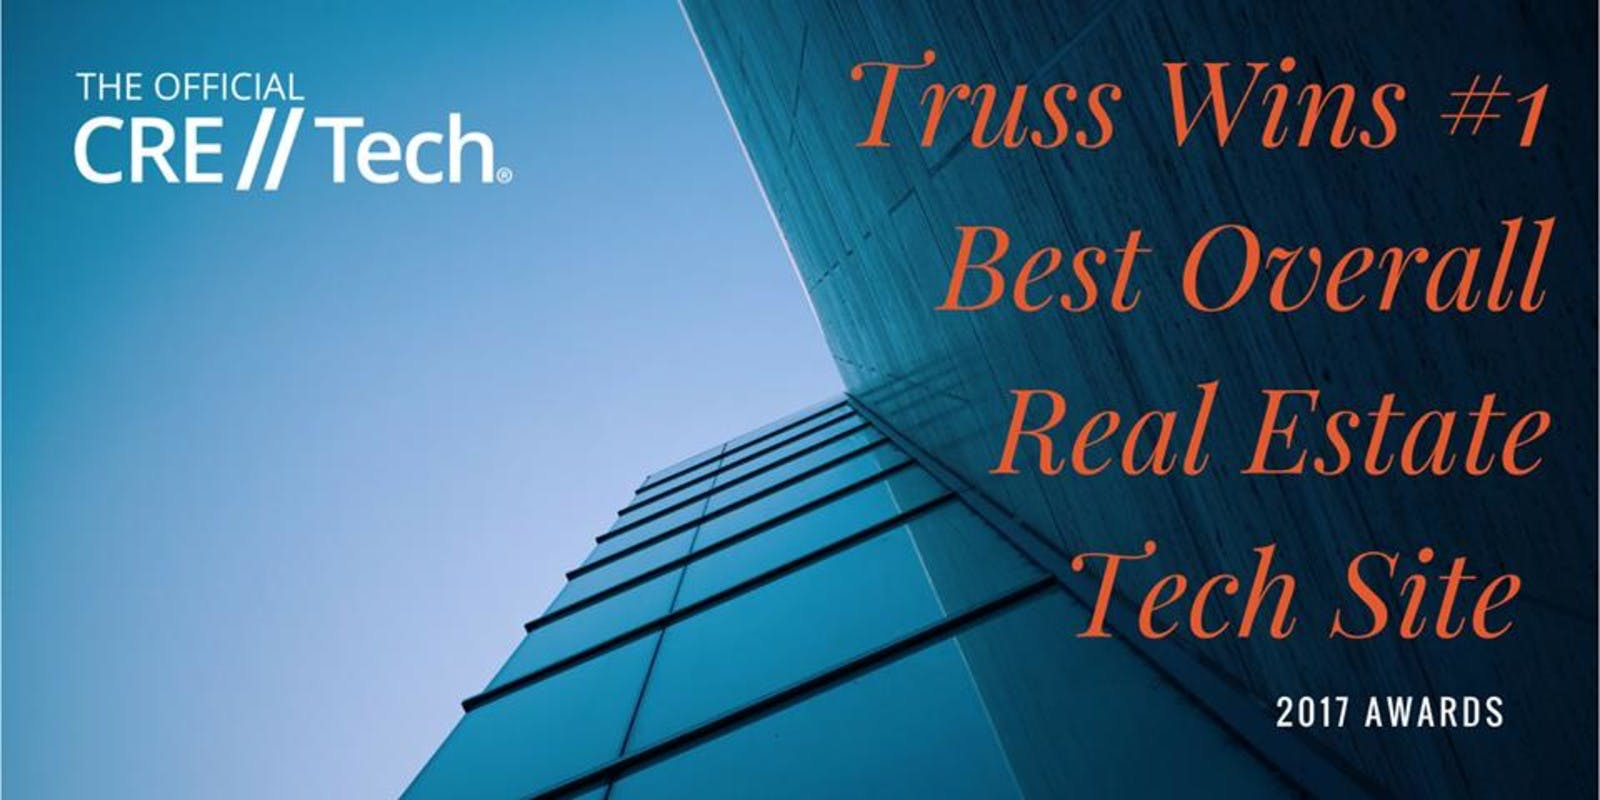 CRE//Tech - Truss wins 1st - Best Overall Real Estate Tech Site - 2017